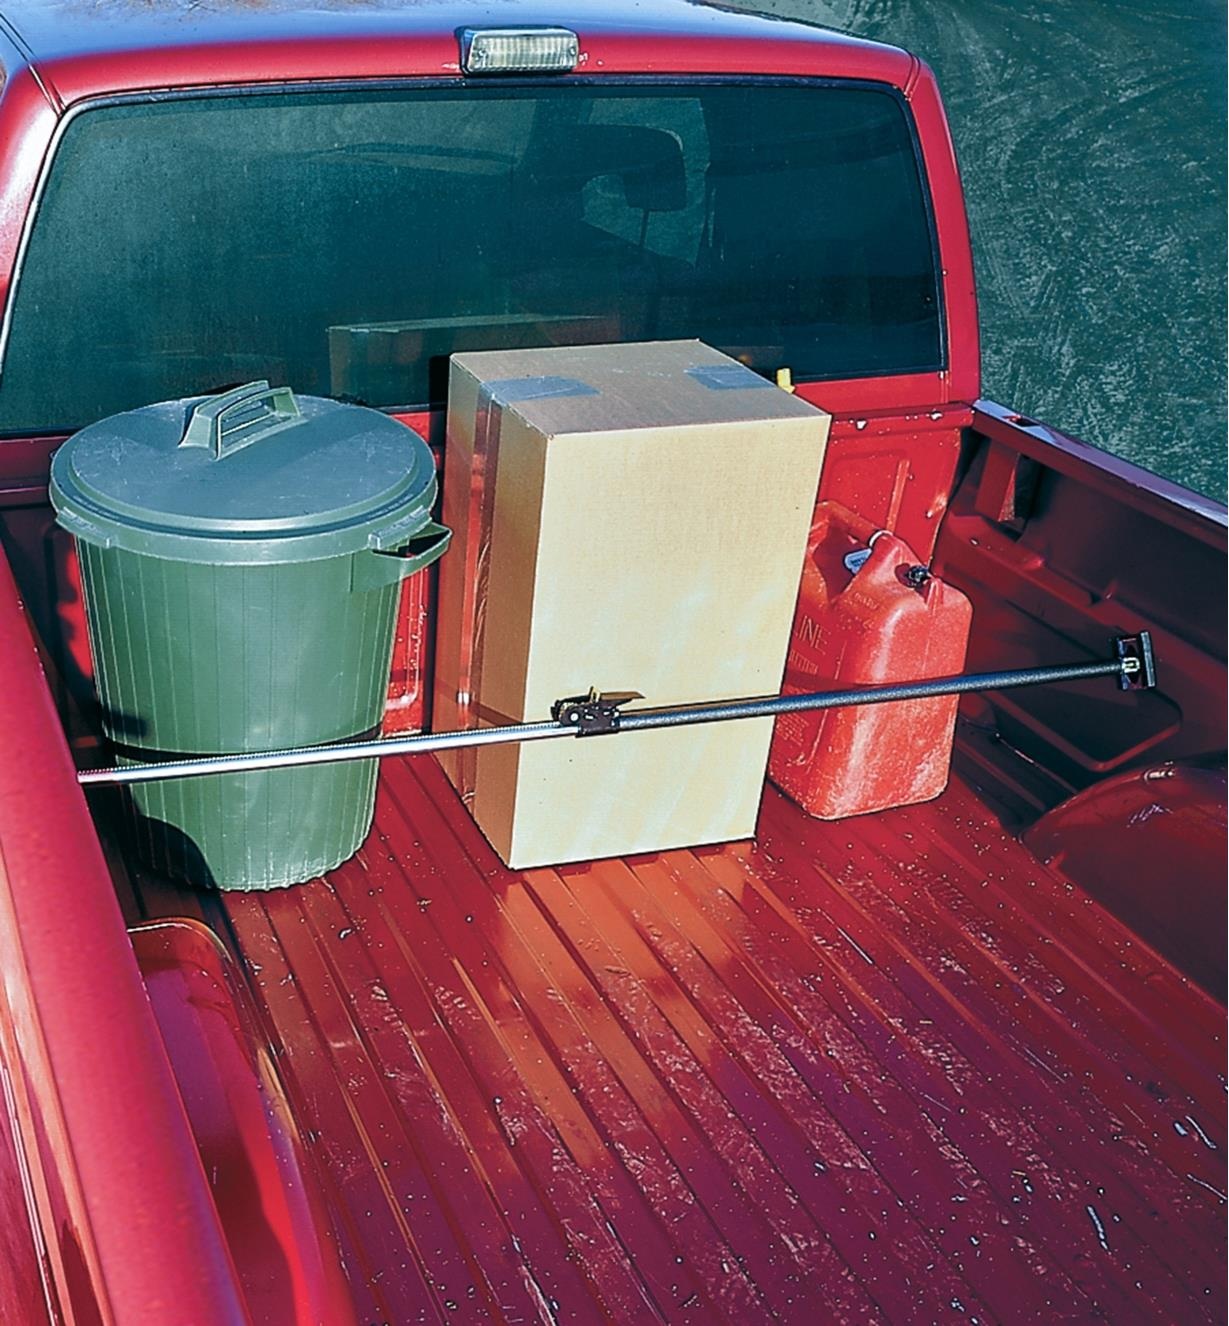 Cargo bar used to secure items in a pickup truck bed